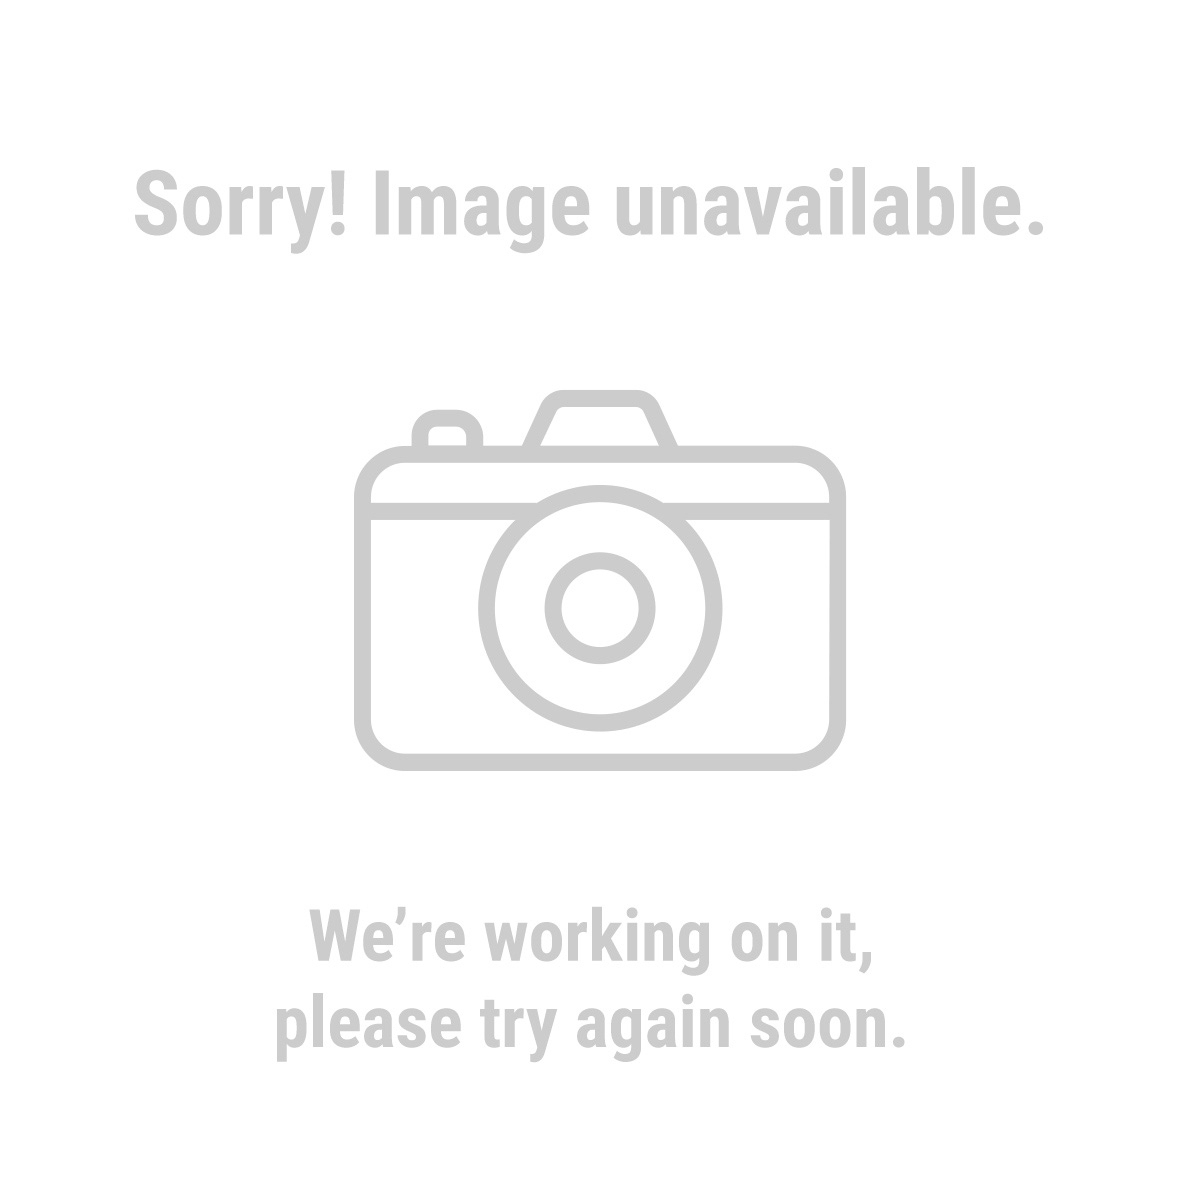 Cen-Tech® 61839 Digital Inspection Camera